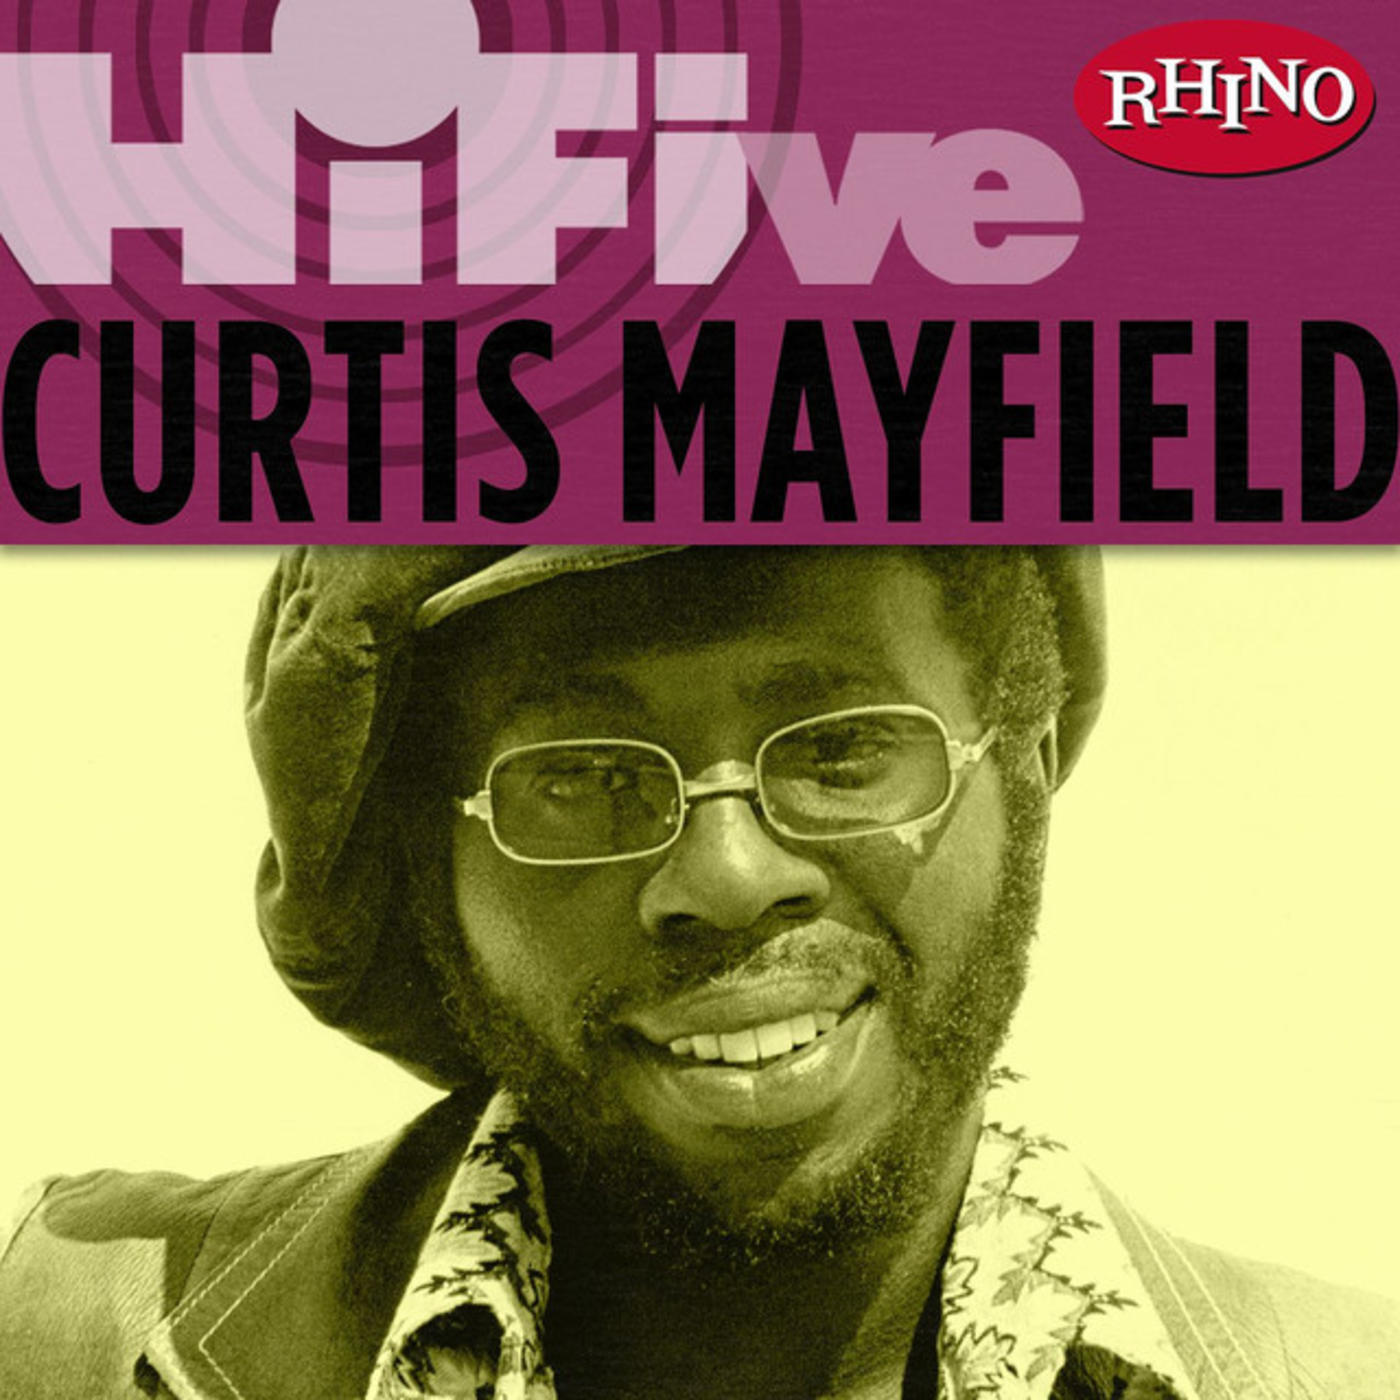 Rhino Hi-Five: Curtis Mayfield